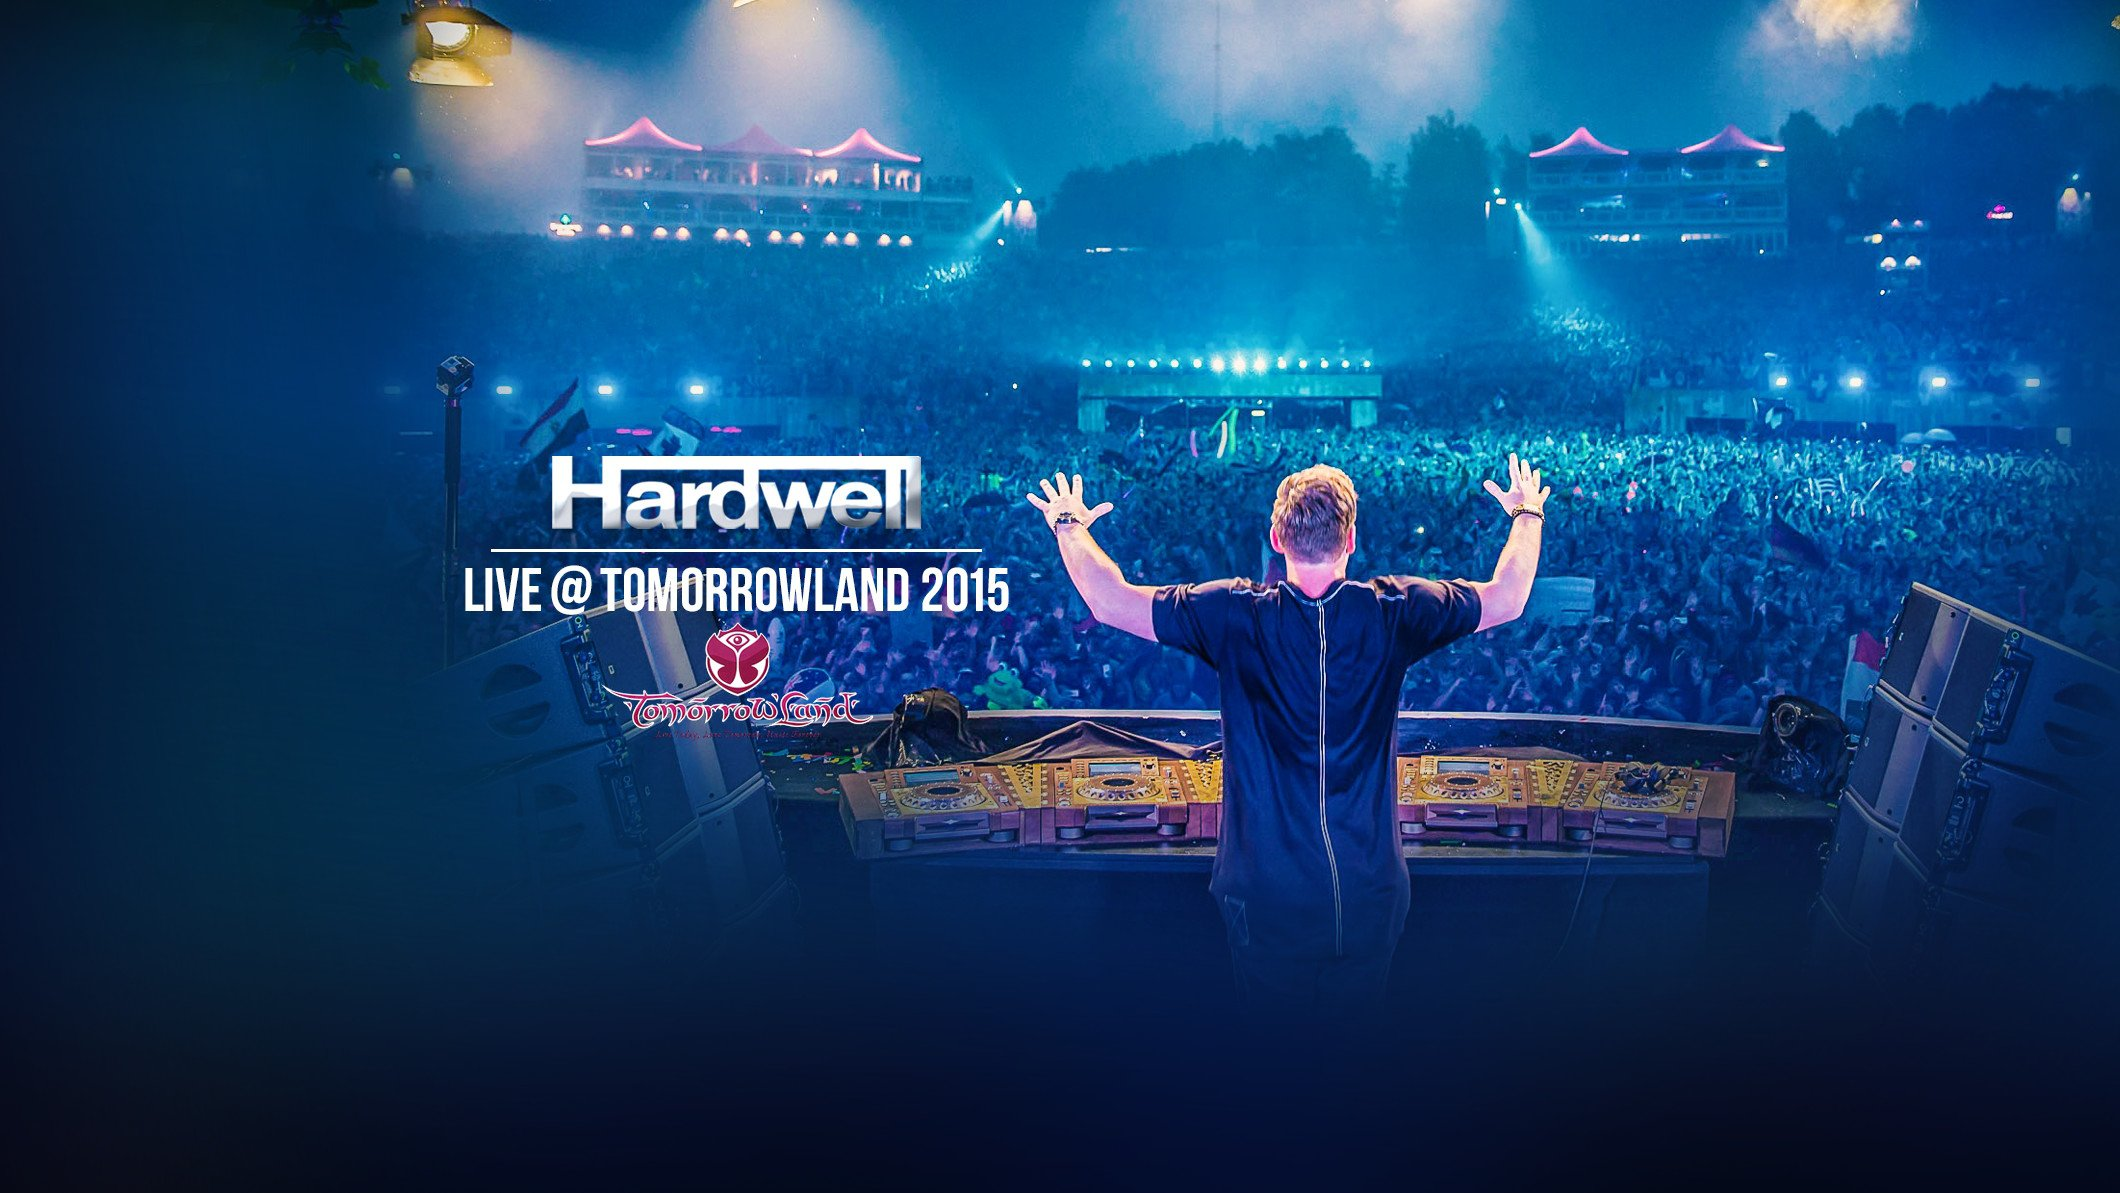 hardwell live wallpaper - photo #10